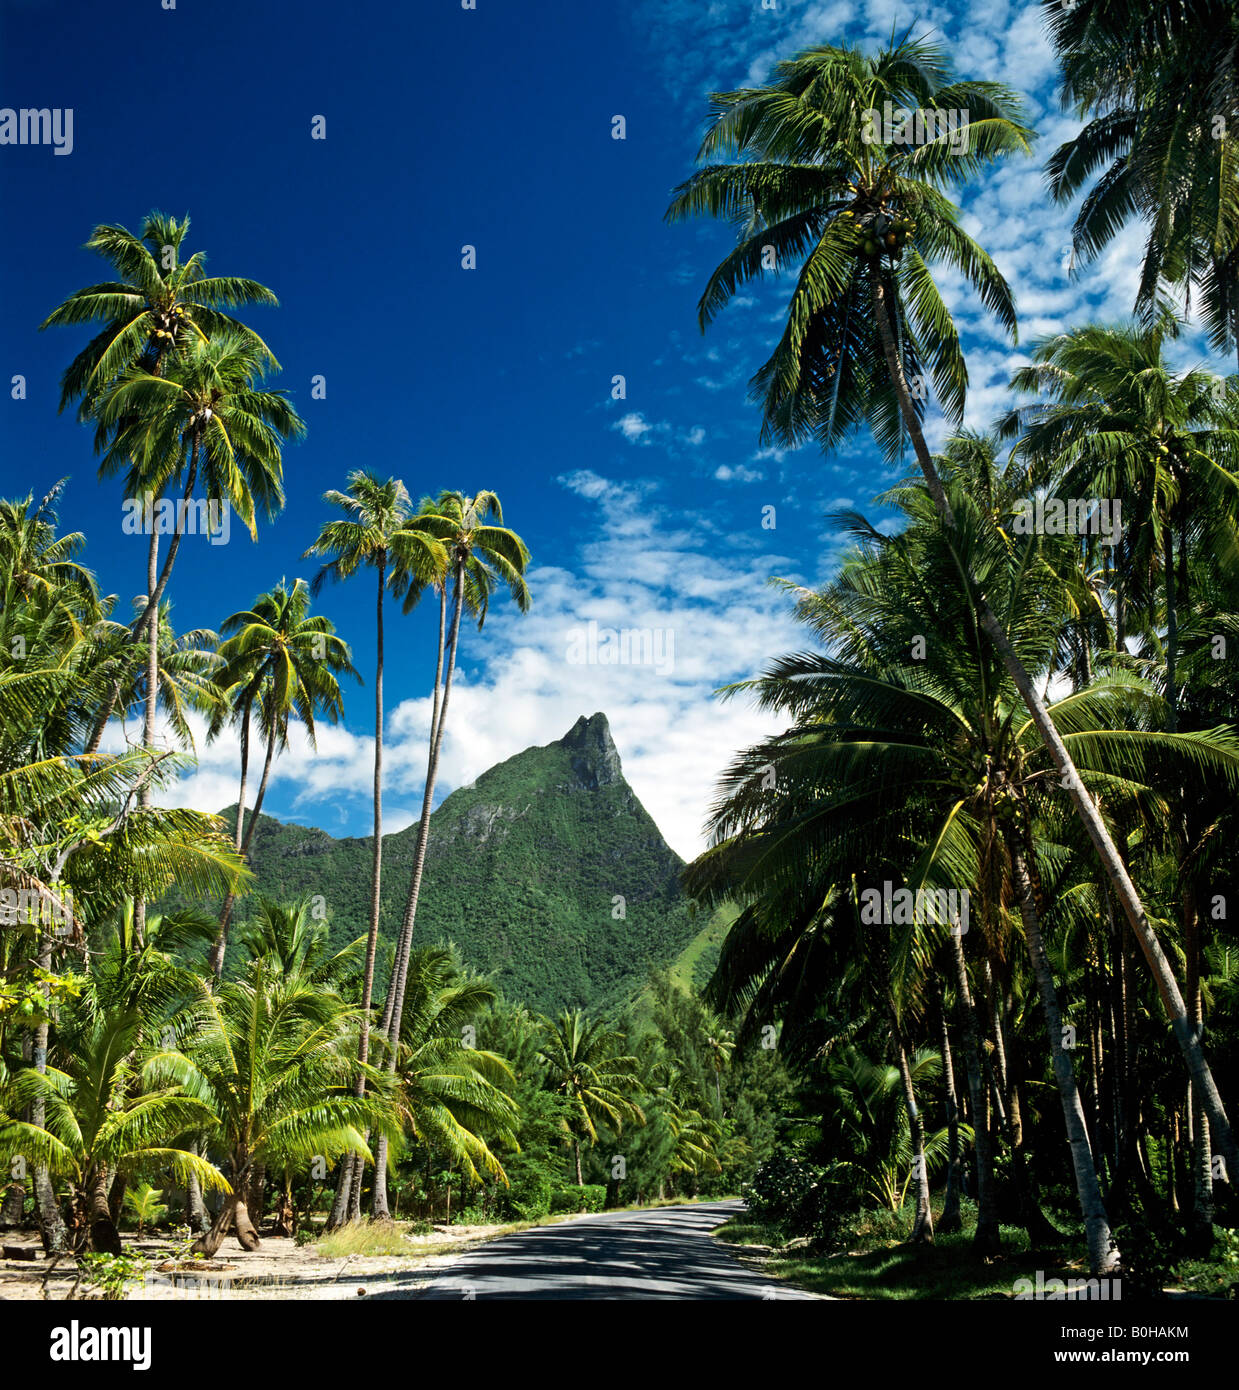 Palm trees, Moorea, Society Islands, French Polynesia, South Pacific, Oceania - Stock Image